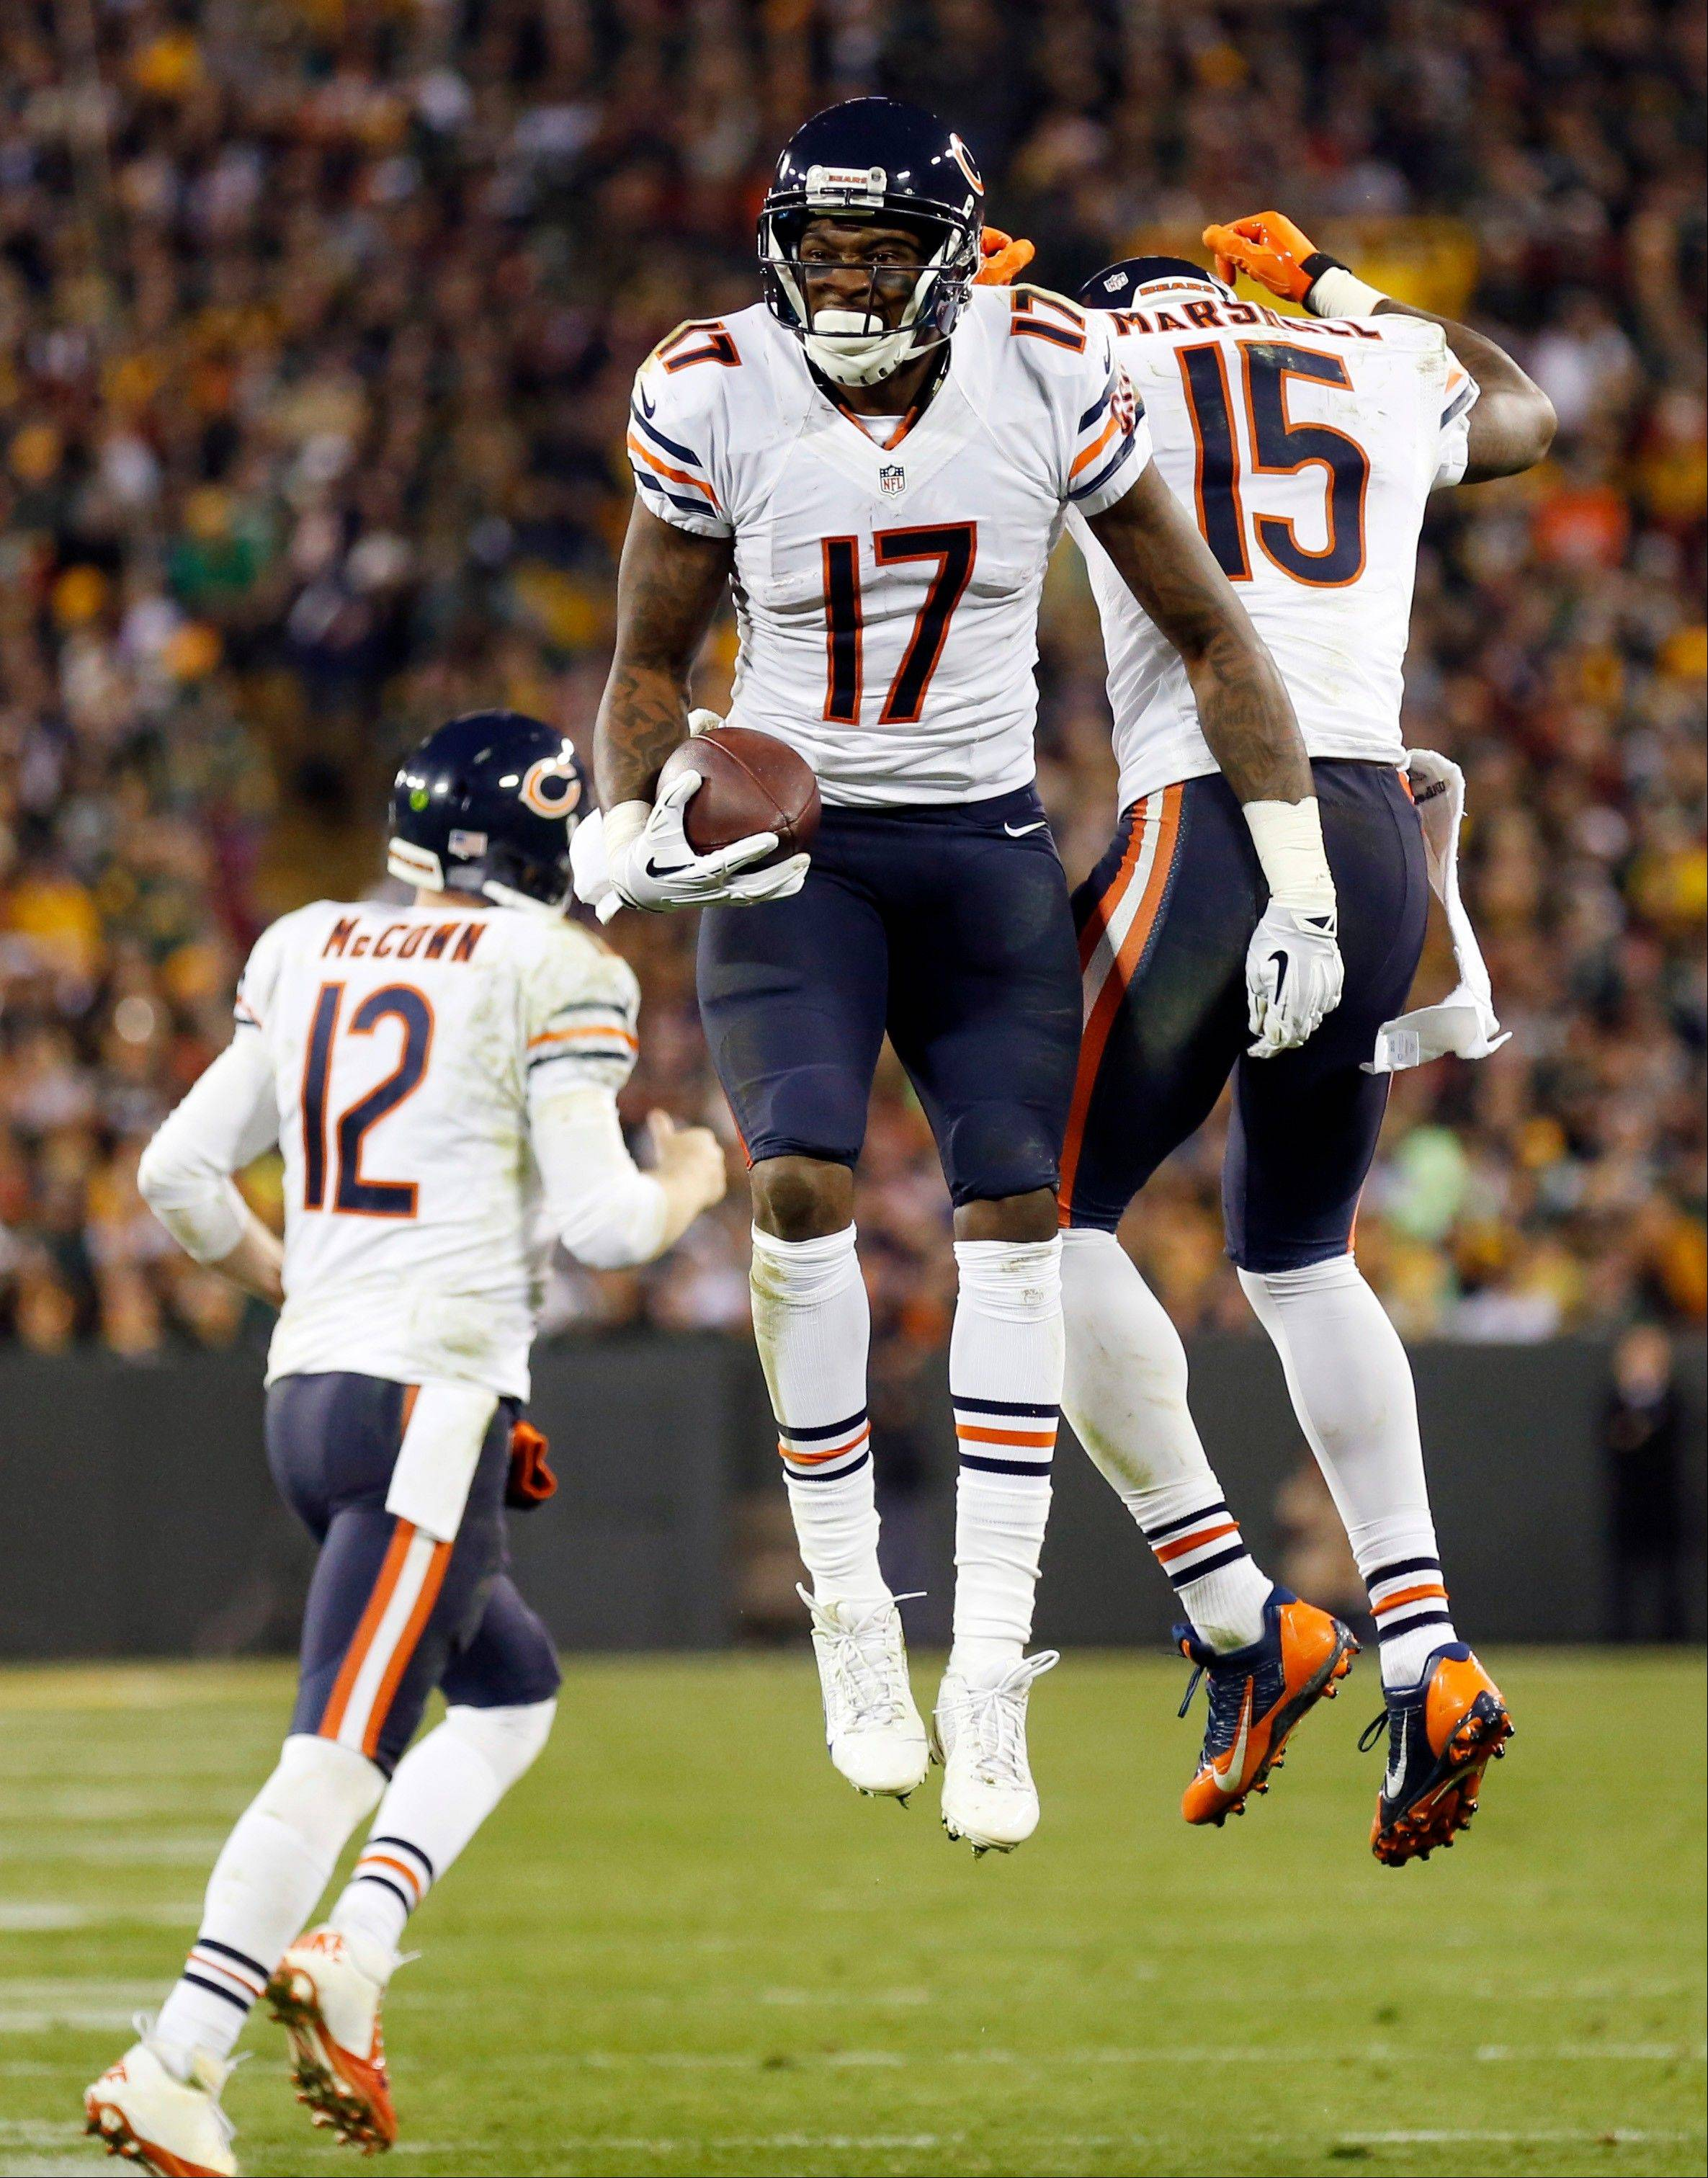 Bears' WRs excel at more than catching